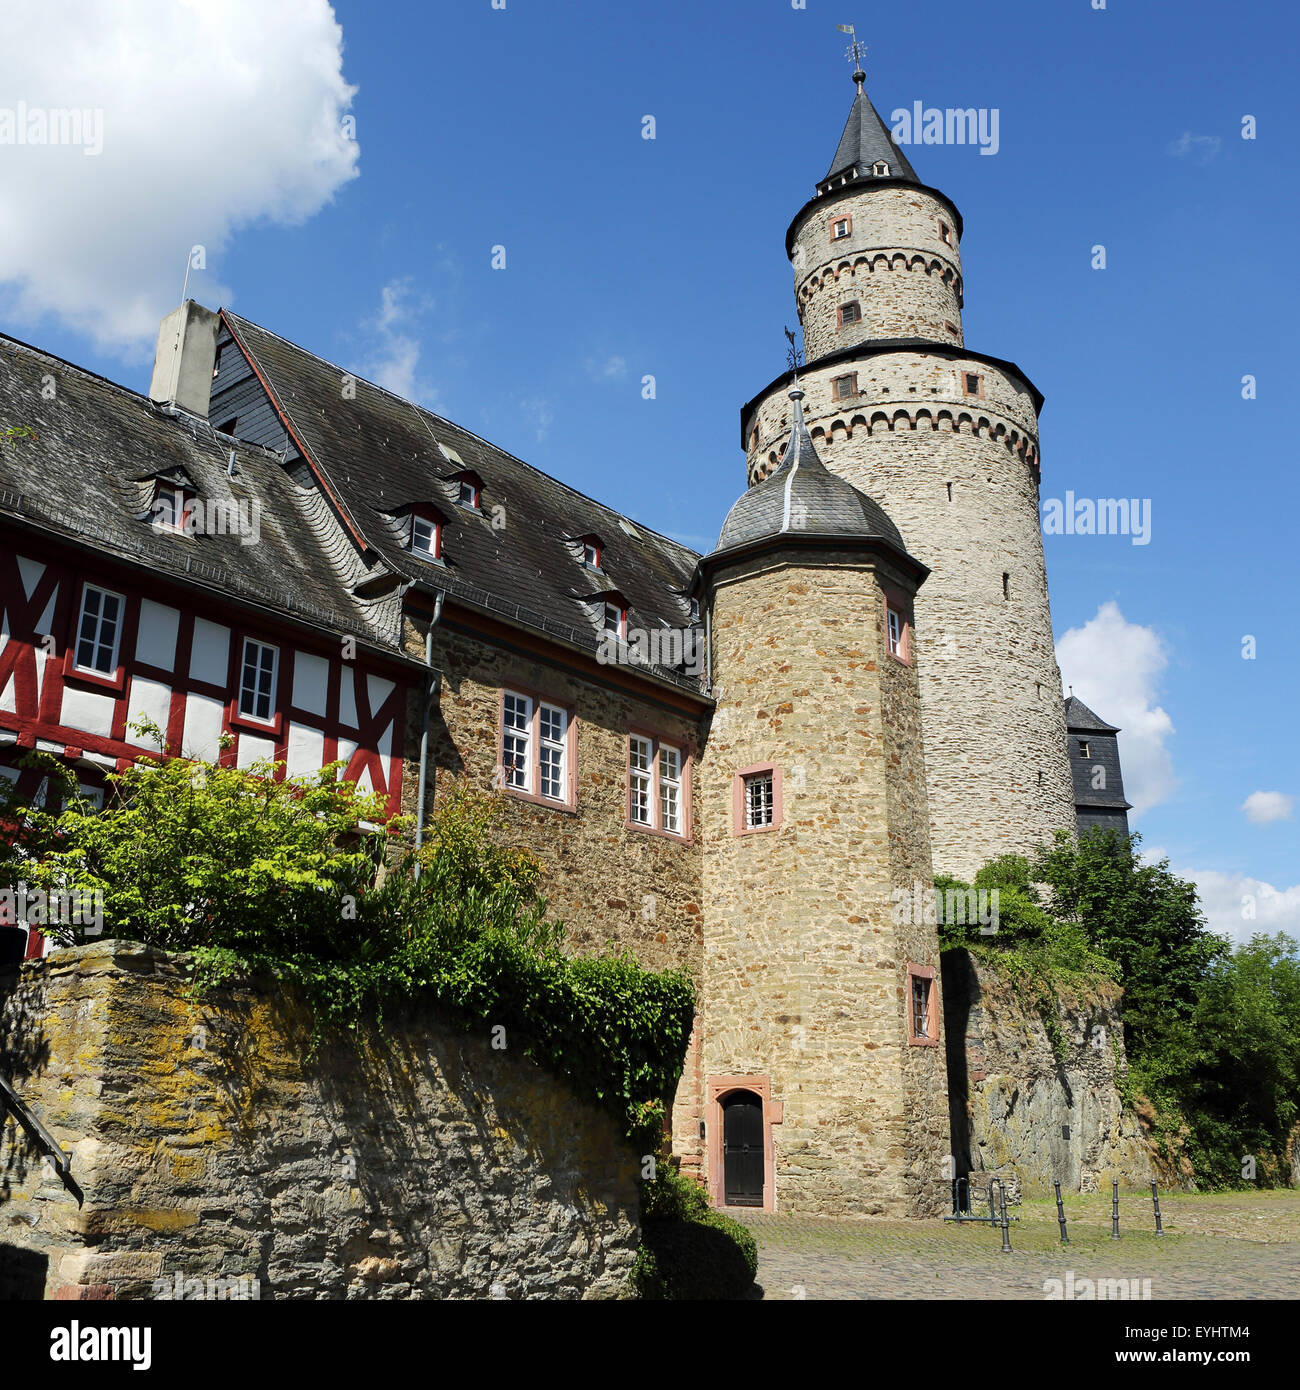 "The Hexenturm (""Witches Tower) at the castle in Idstein, Germany. The tower dates from 1170 and is also known as Stock Photo"